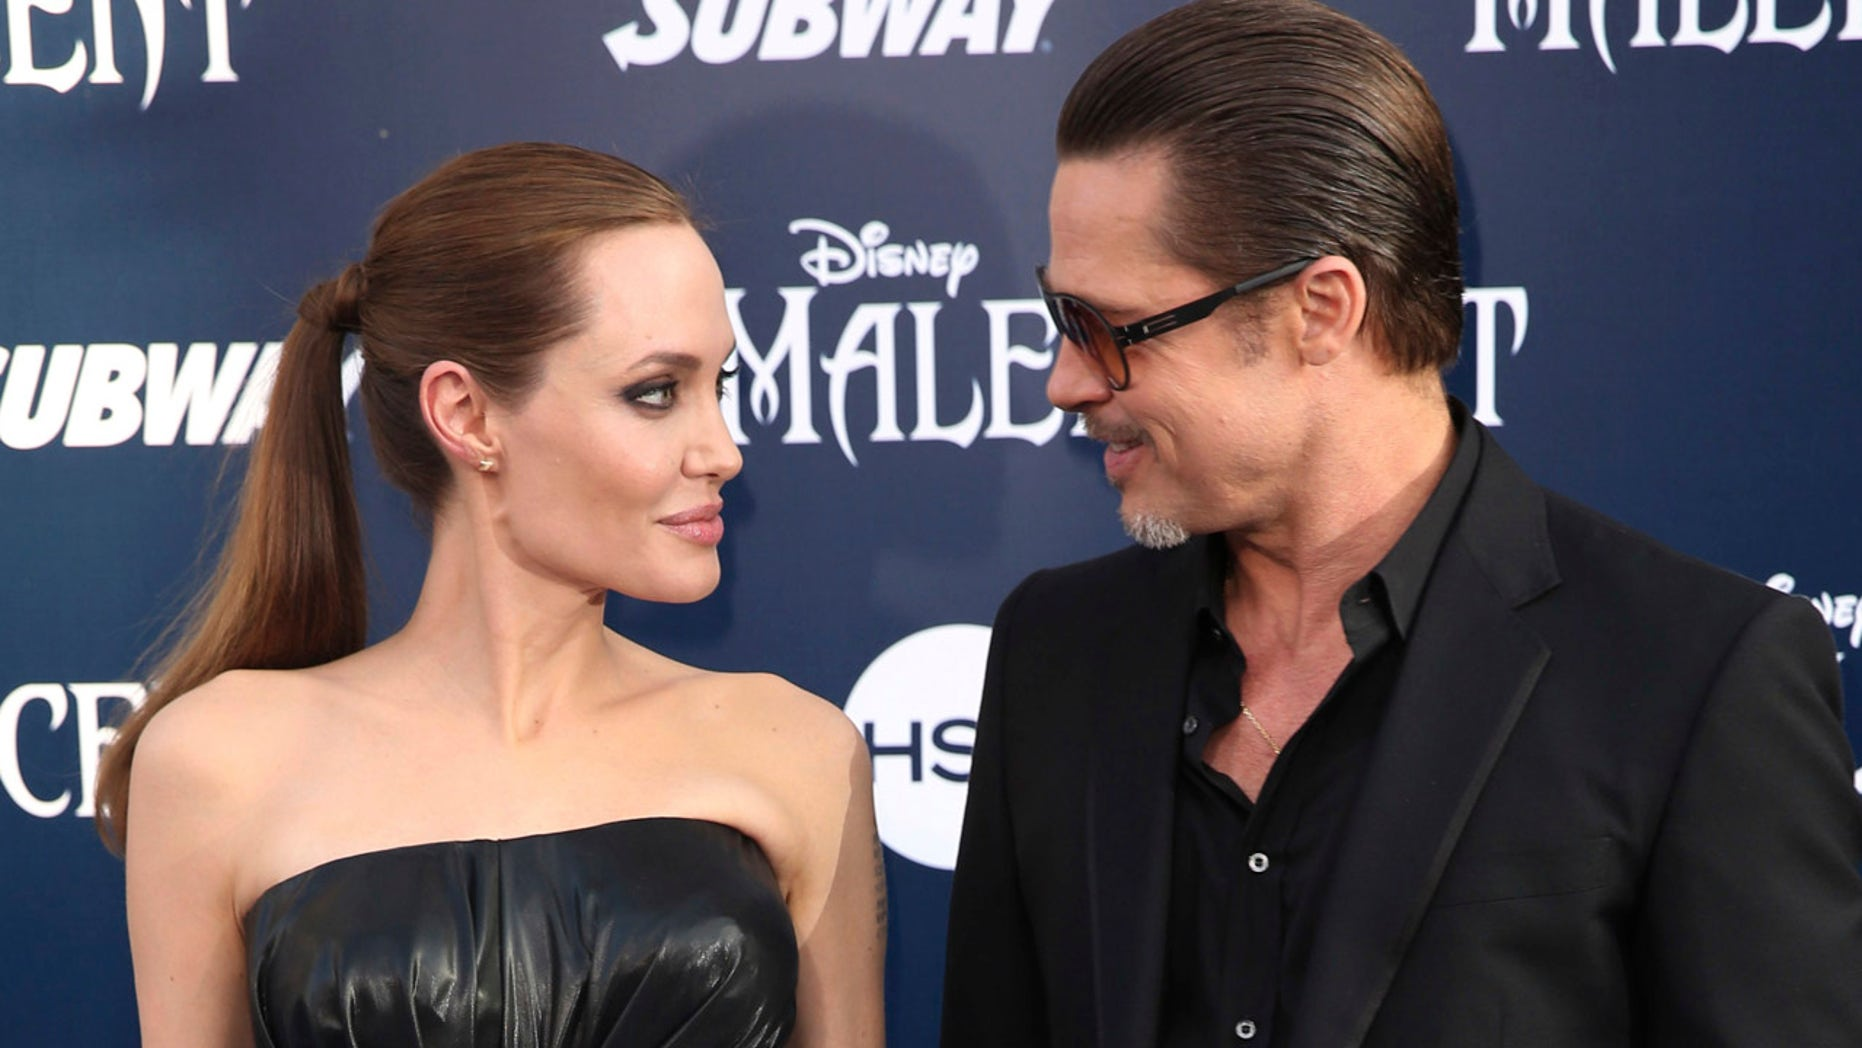 """May 28, 2014: Angelina Jolie and Brad Pitt arrive at the world premiere of """"Maleficent"""" in Los Angeles."""